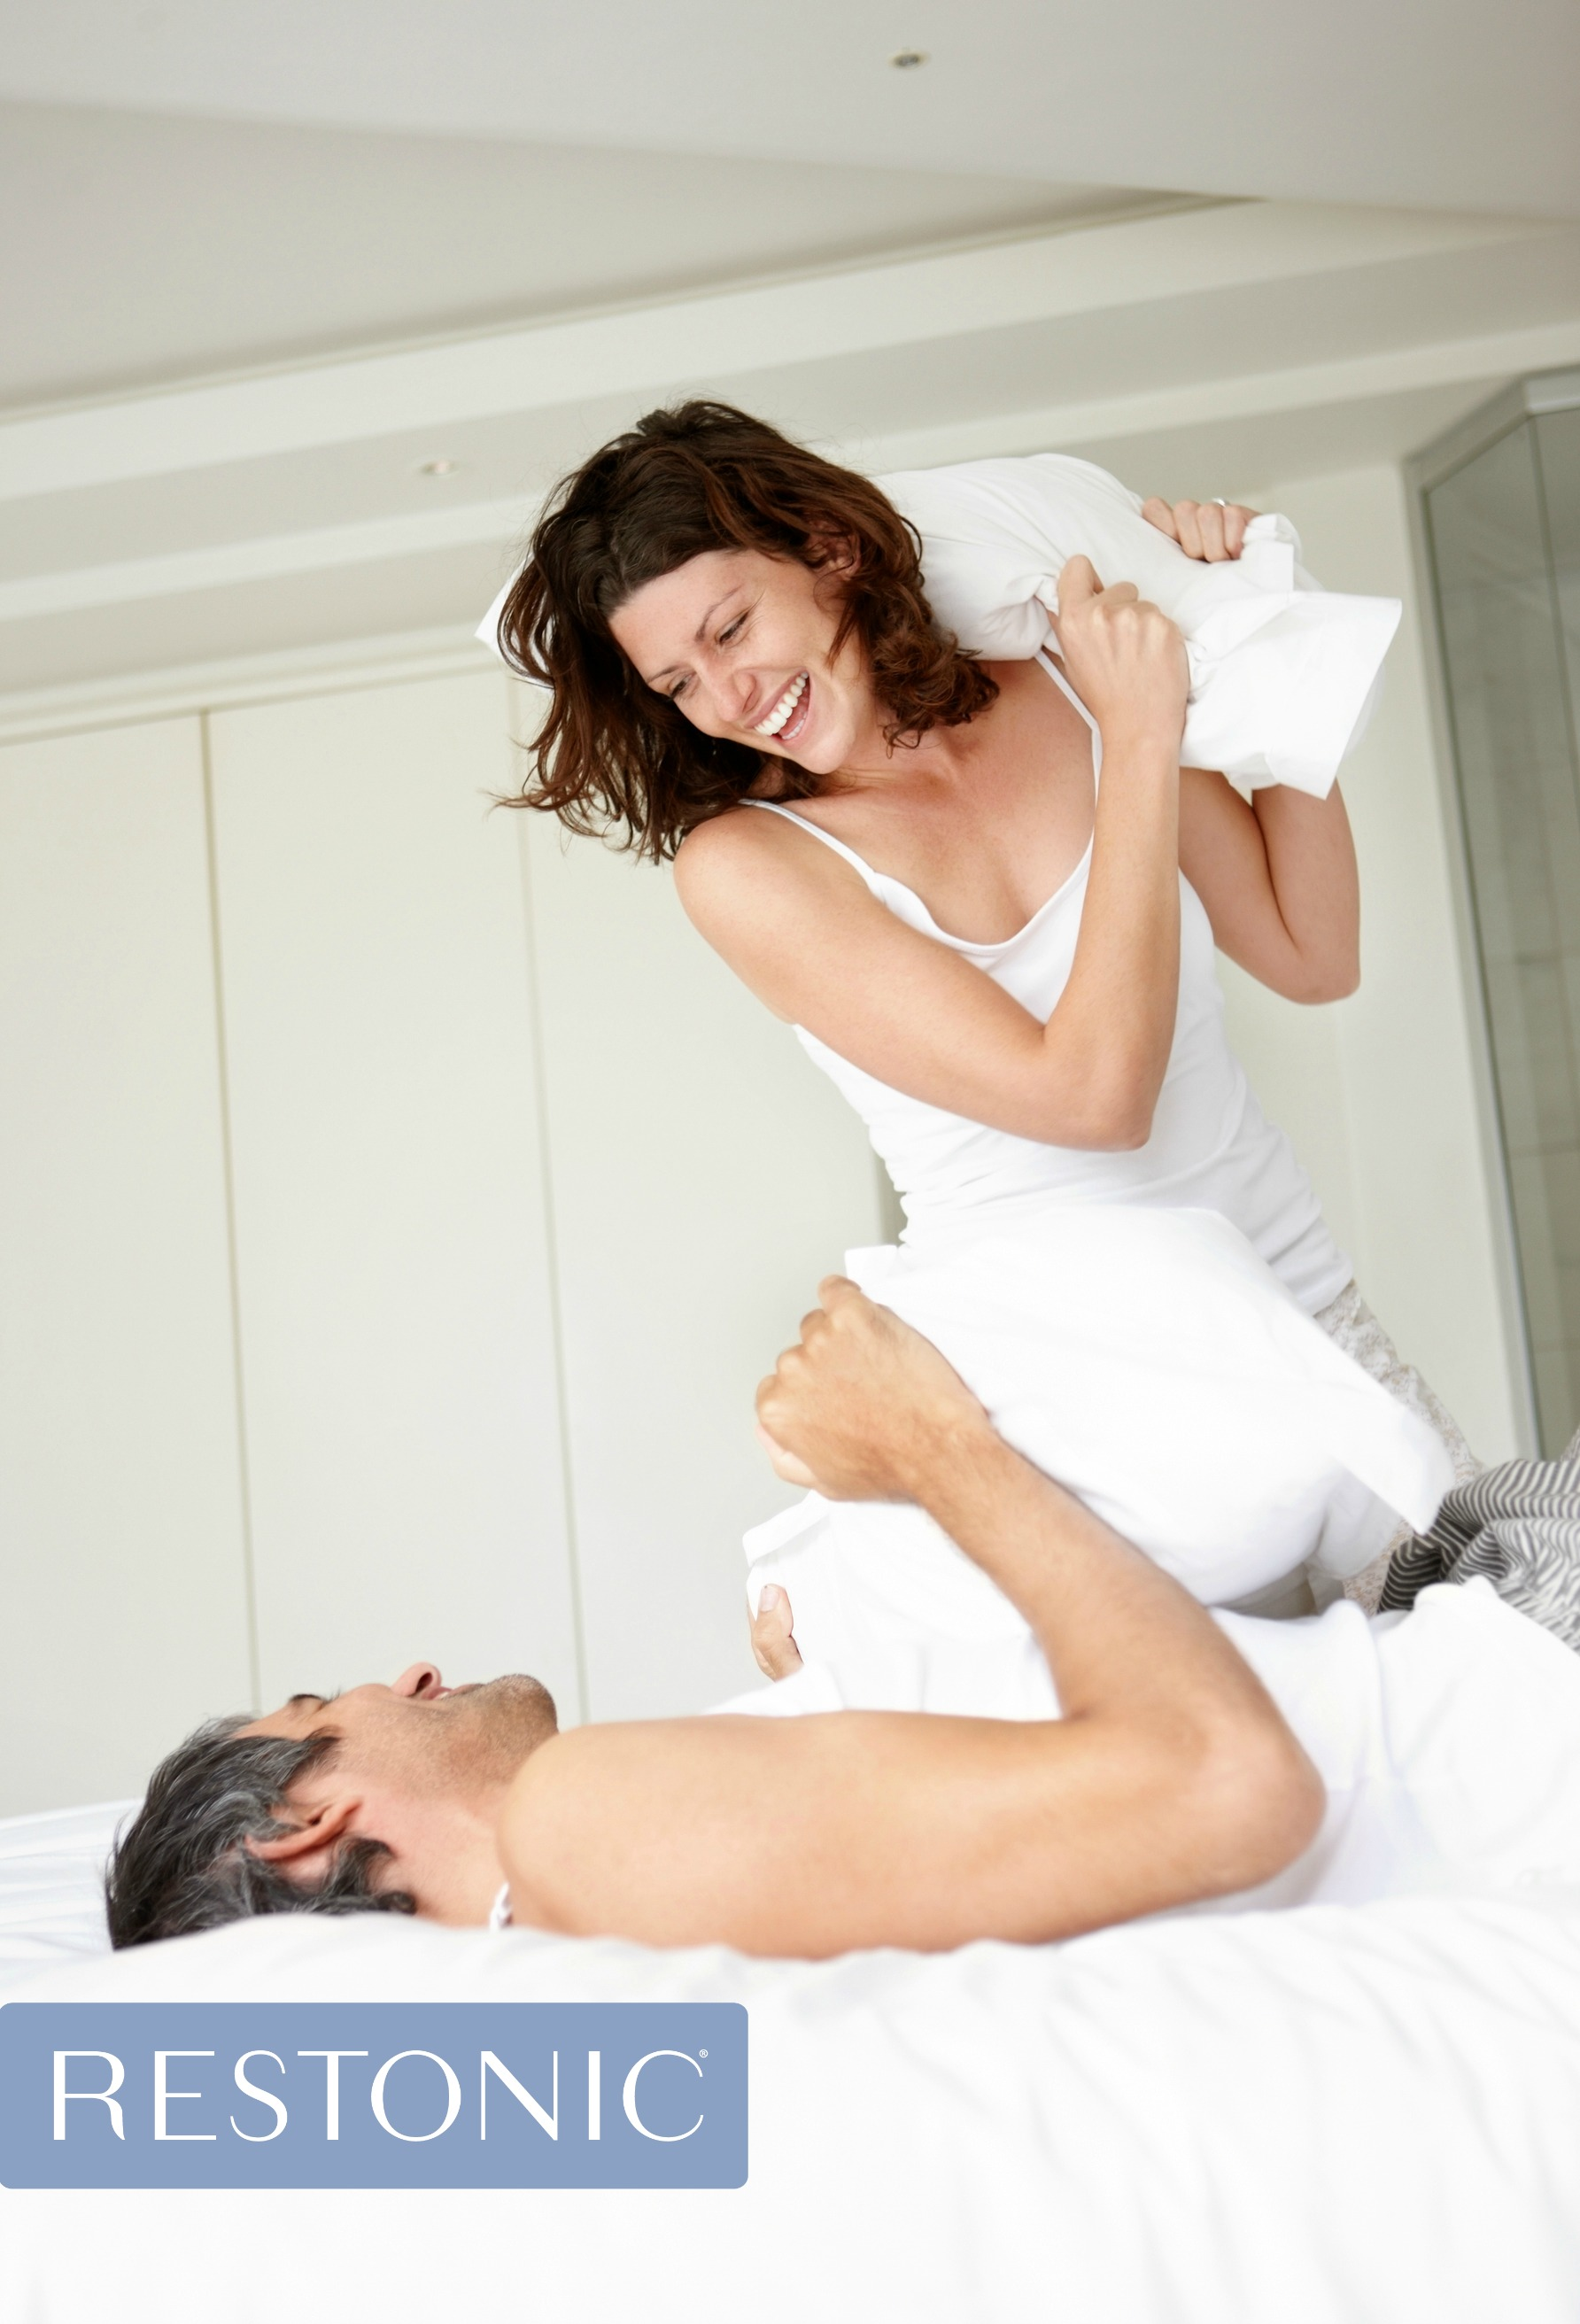 Man and woman in a jovial pillow fight while discussing what mattress is best for their body types.